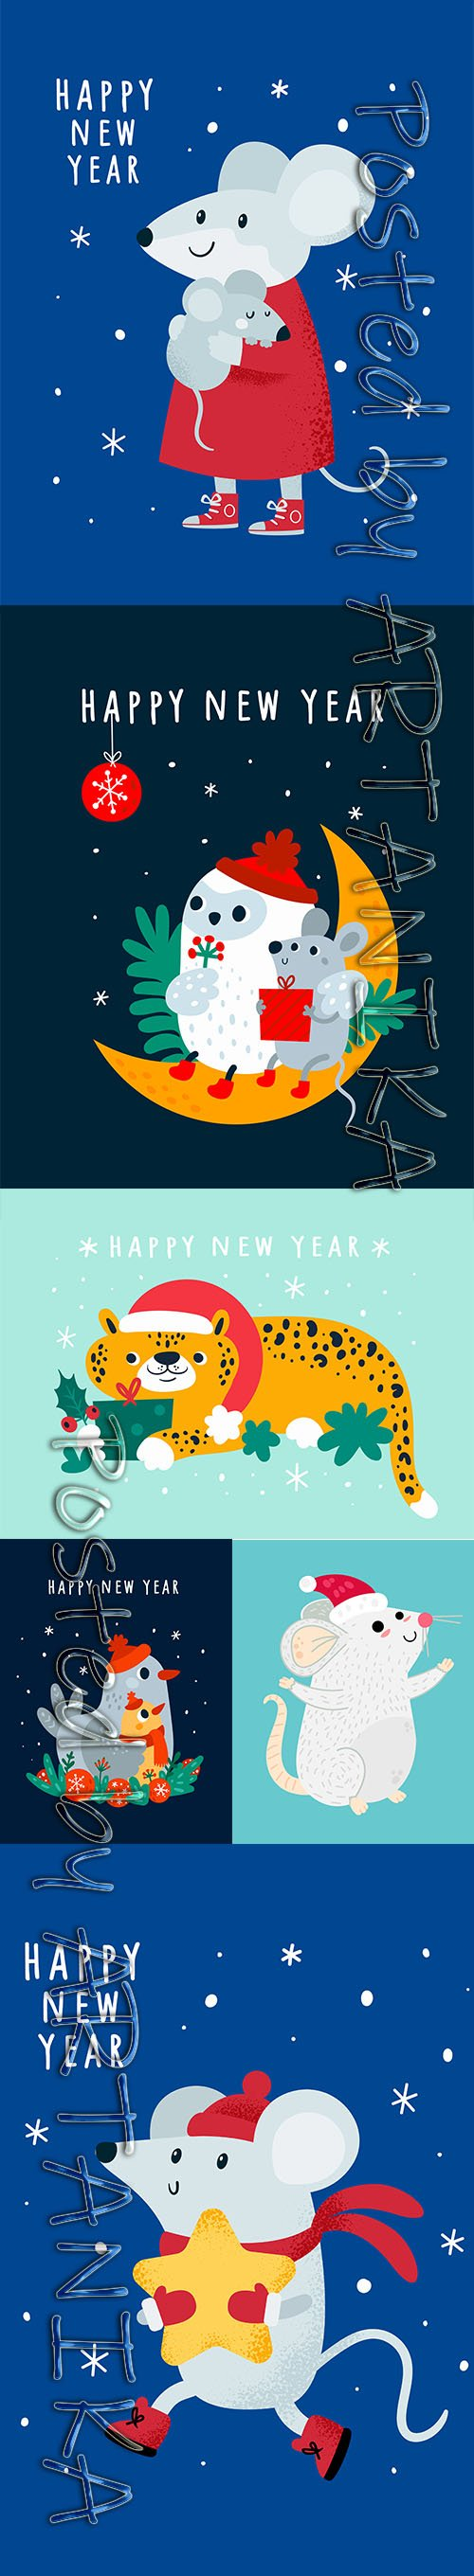 Happy New Year Greeting Card with Cute Animals